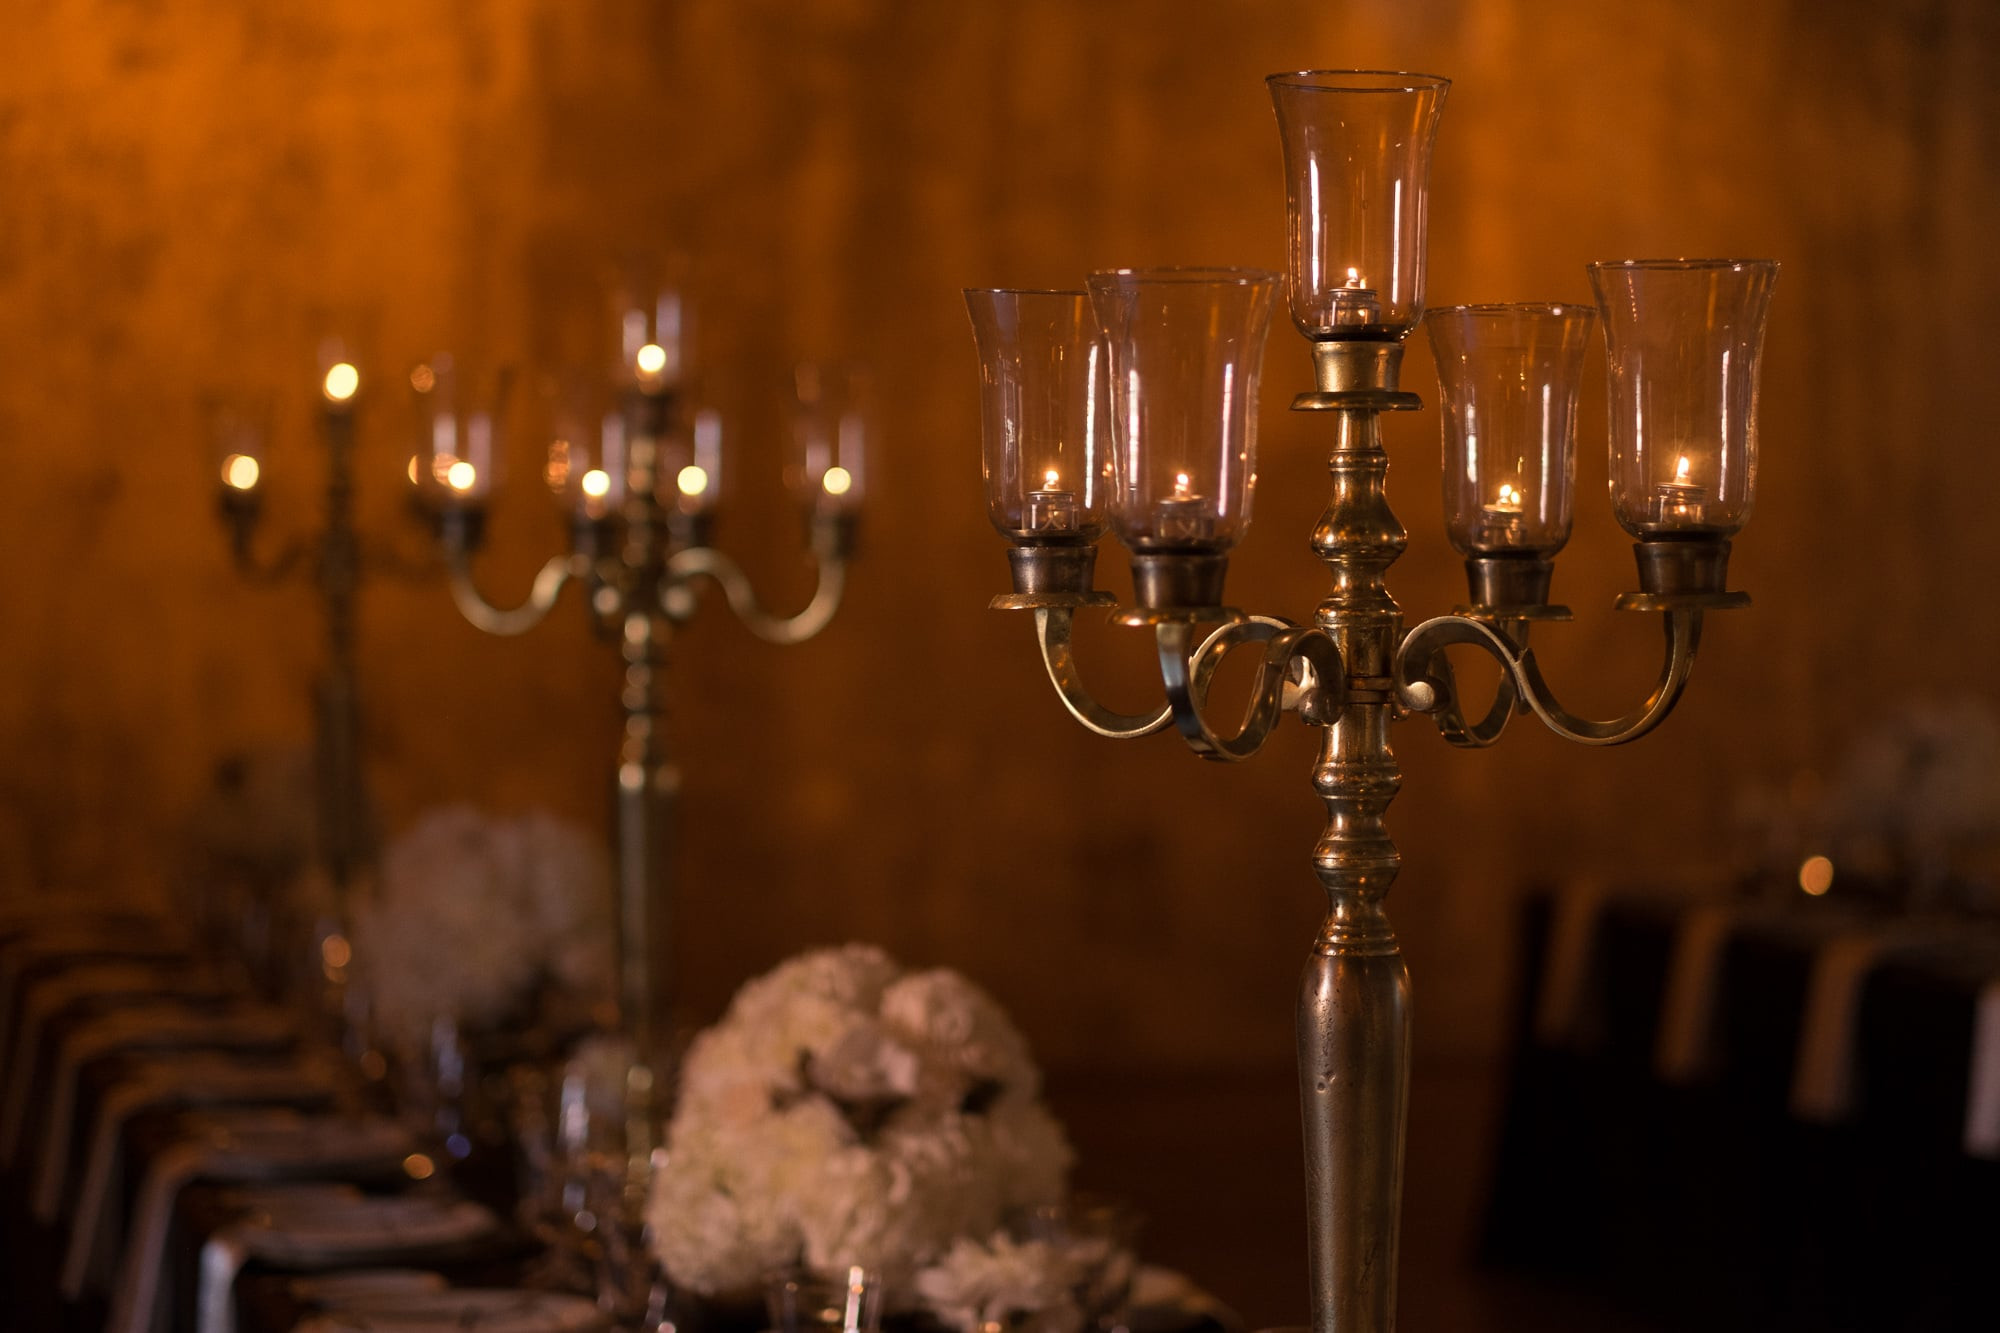 Ashot of the candelabra's on the tables from a wedding reception at Toronto's Fermenting Cellar in the Distillery District.